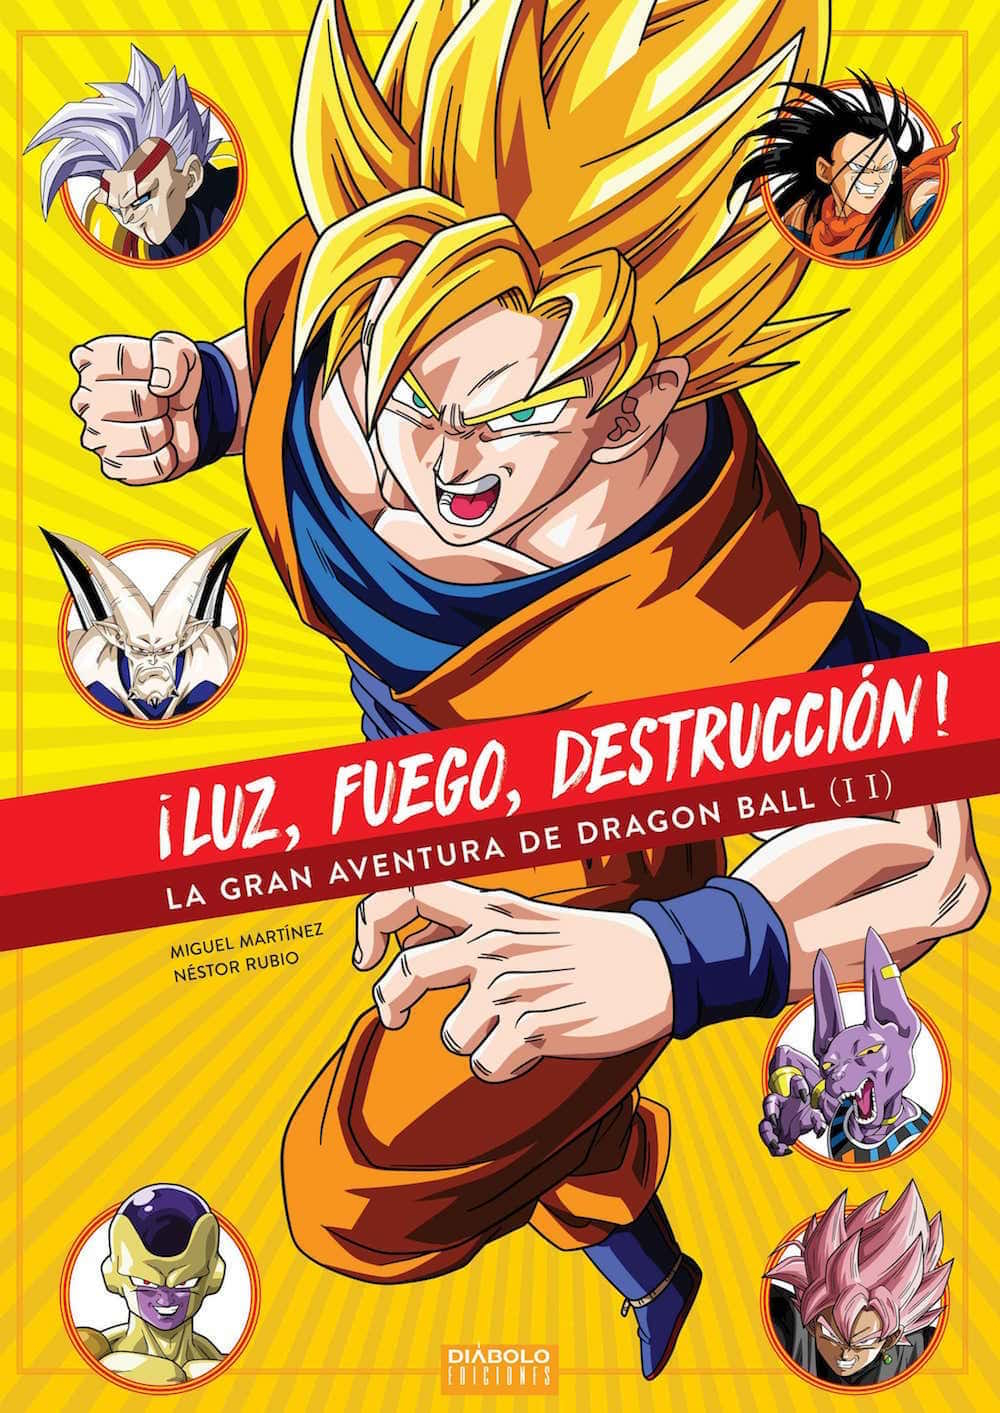 ¡LUZ, FUEGO, DESTRUCCION! LA GRAN AVENTURA DE DRAGON BALL (2 DE 2)